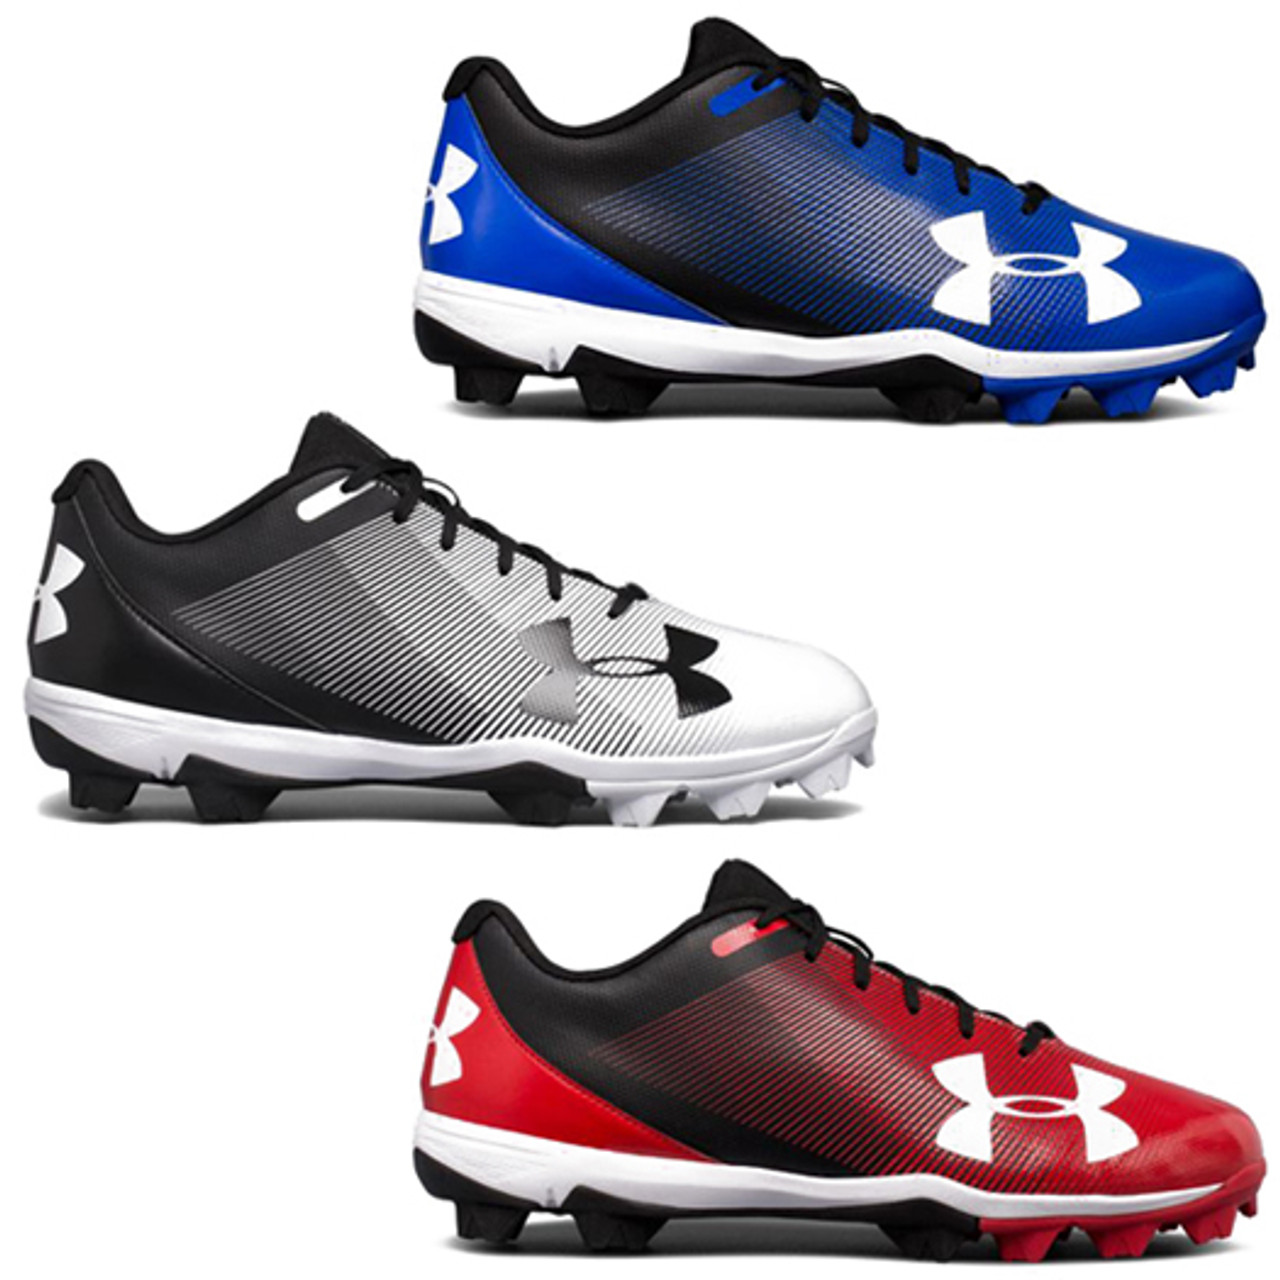 Under Armour Leadoff Low RM Youth